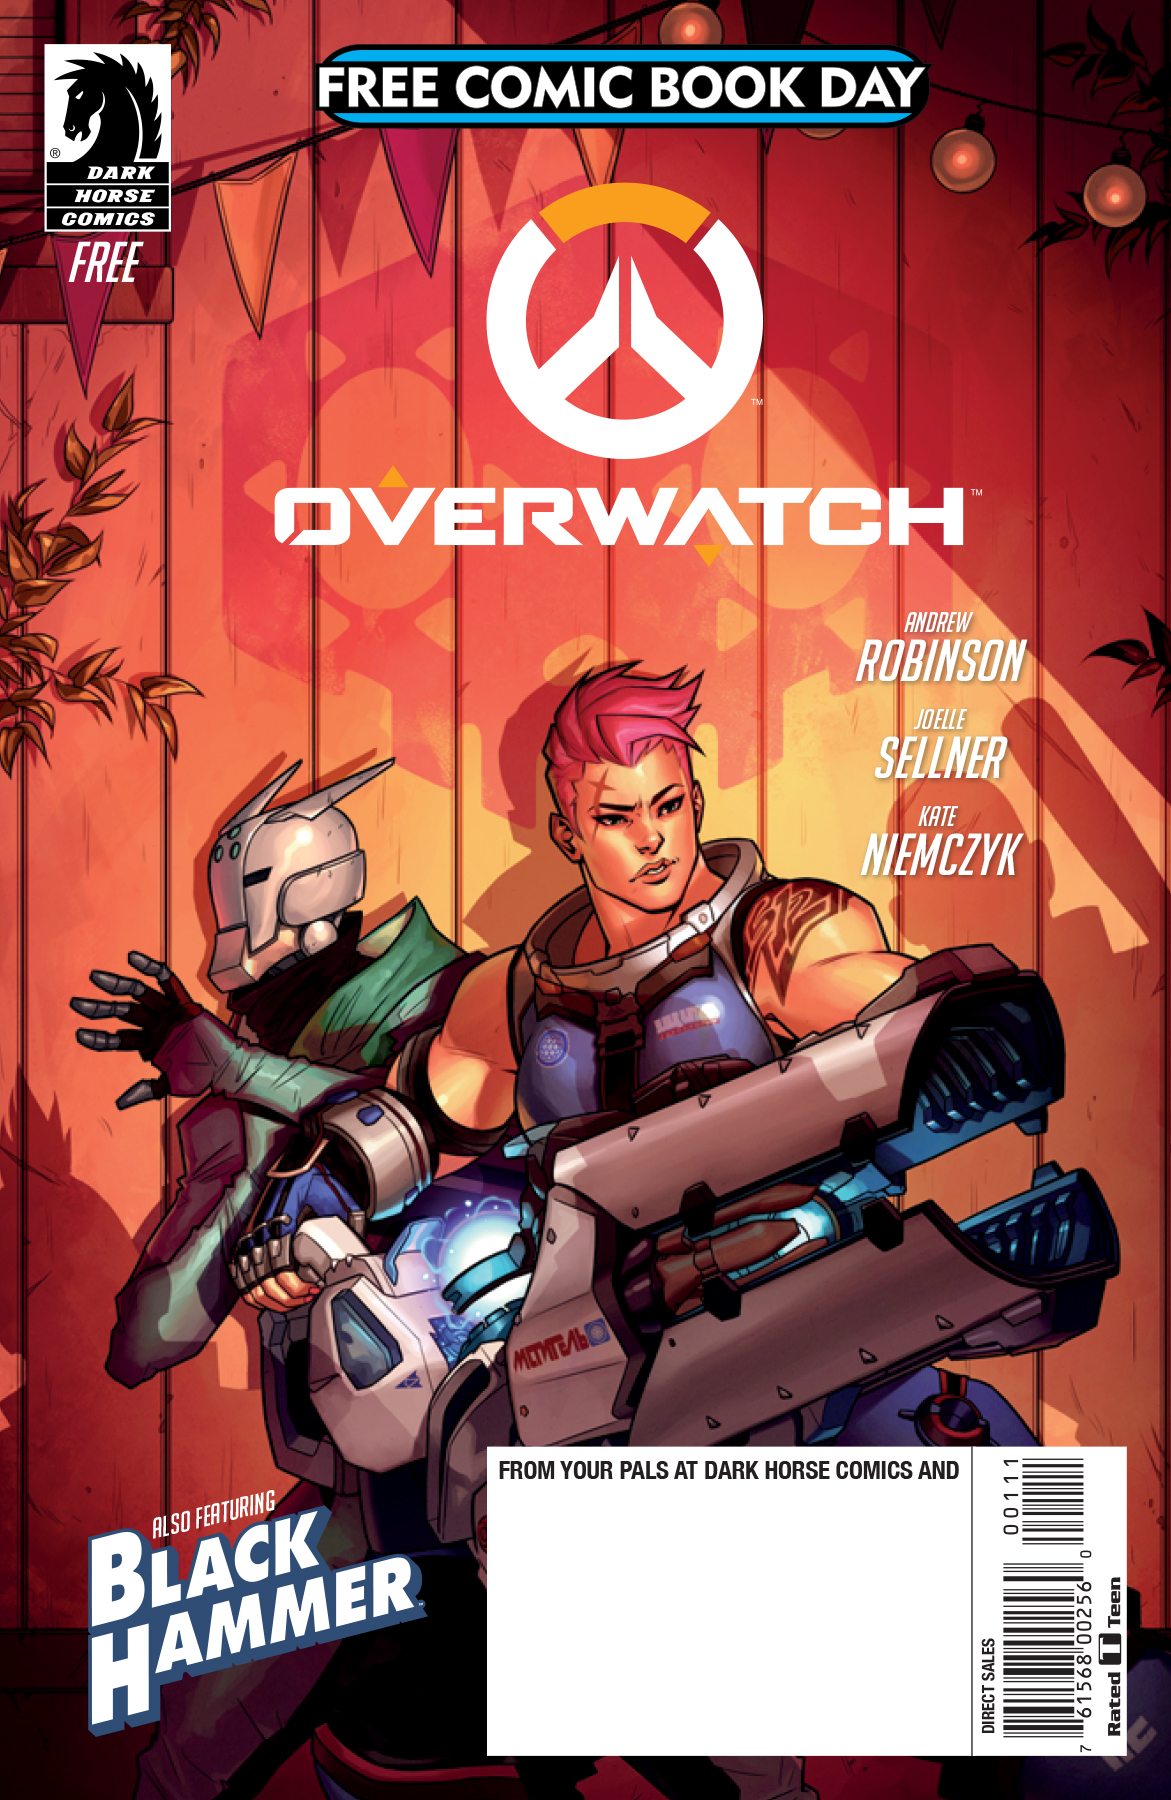 Image result for free comic book day zarya searching